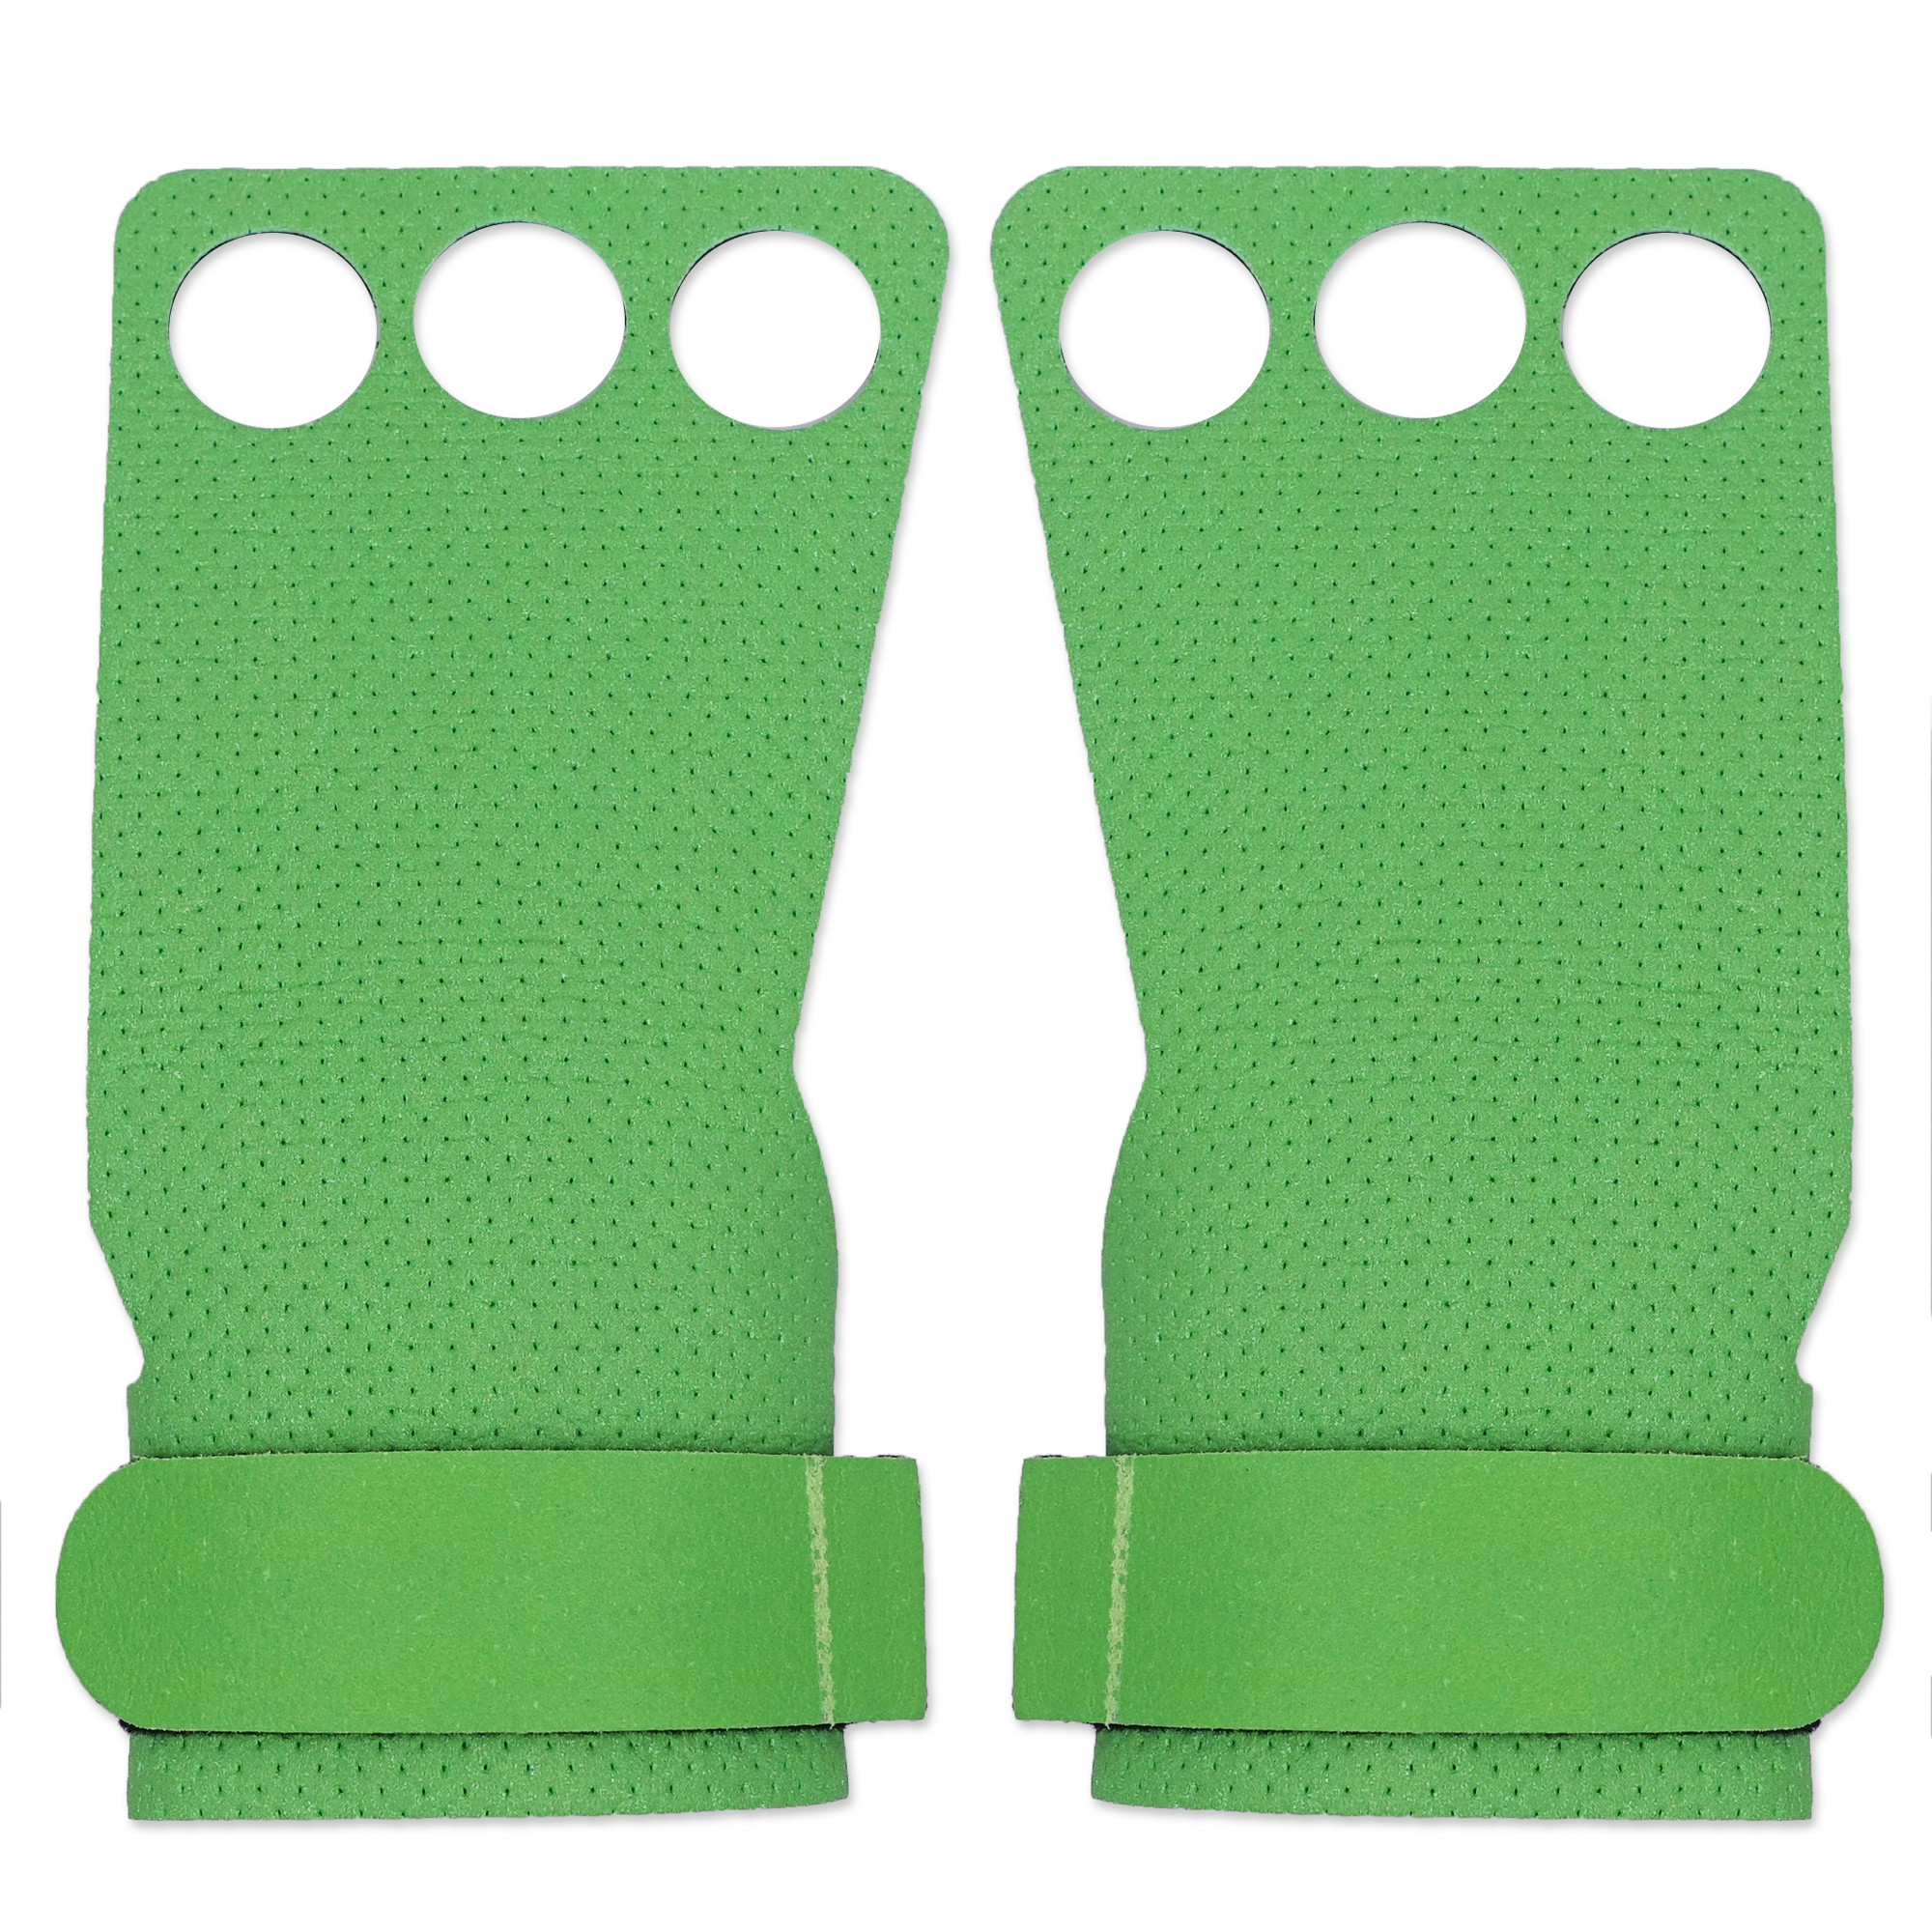 Gym Hand Crossfit Grip Palm Protection For Fitness Weight Lifting Bodybuilding Pull Ups Workout Gloves Kettlebell Wrist Support